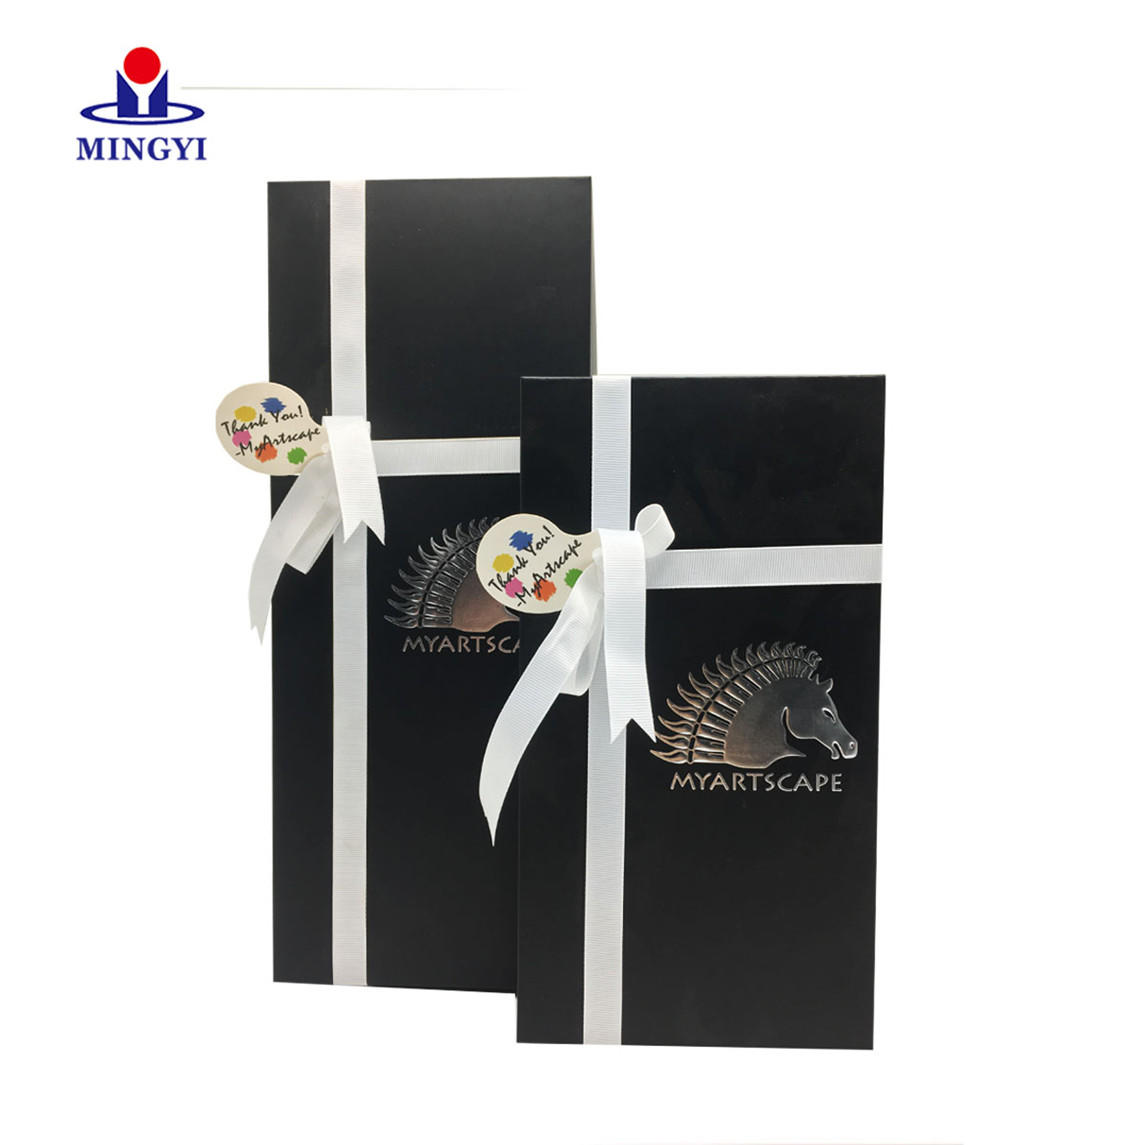 Mooncake Rigid Paper Cardboard with Ribbon Mobile Phone Case candle gift box Mini Toy Suitcase Most Popular Gift Box